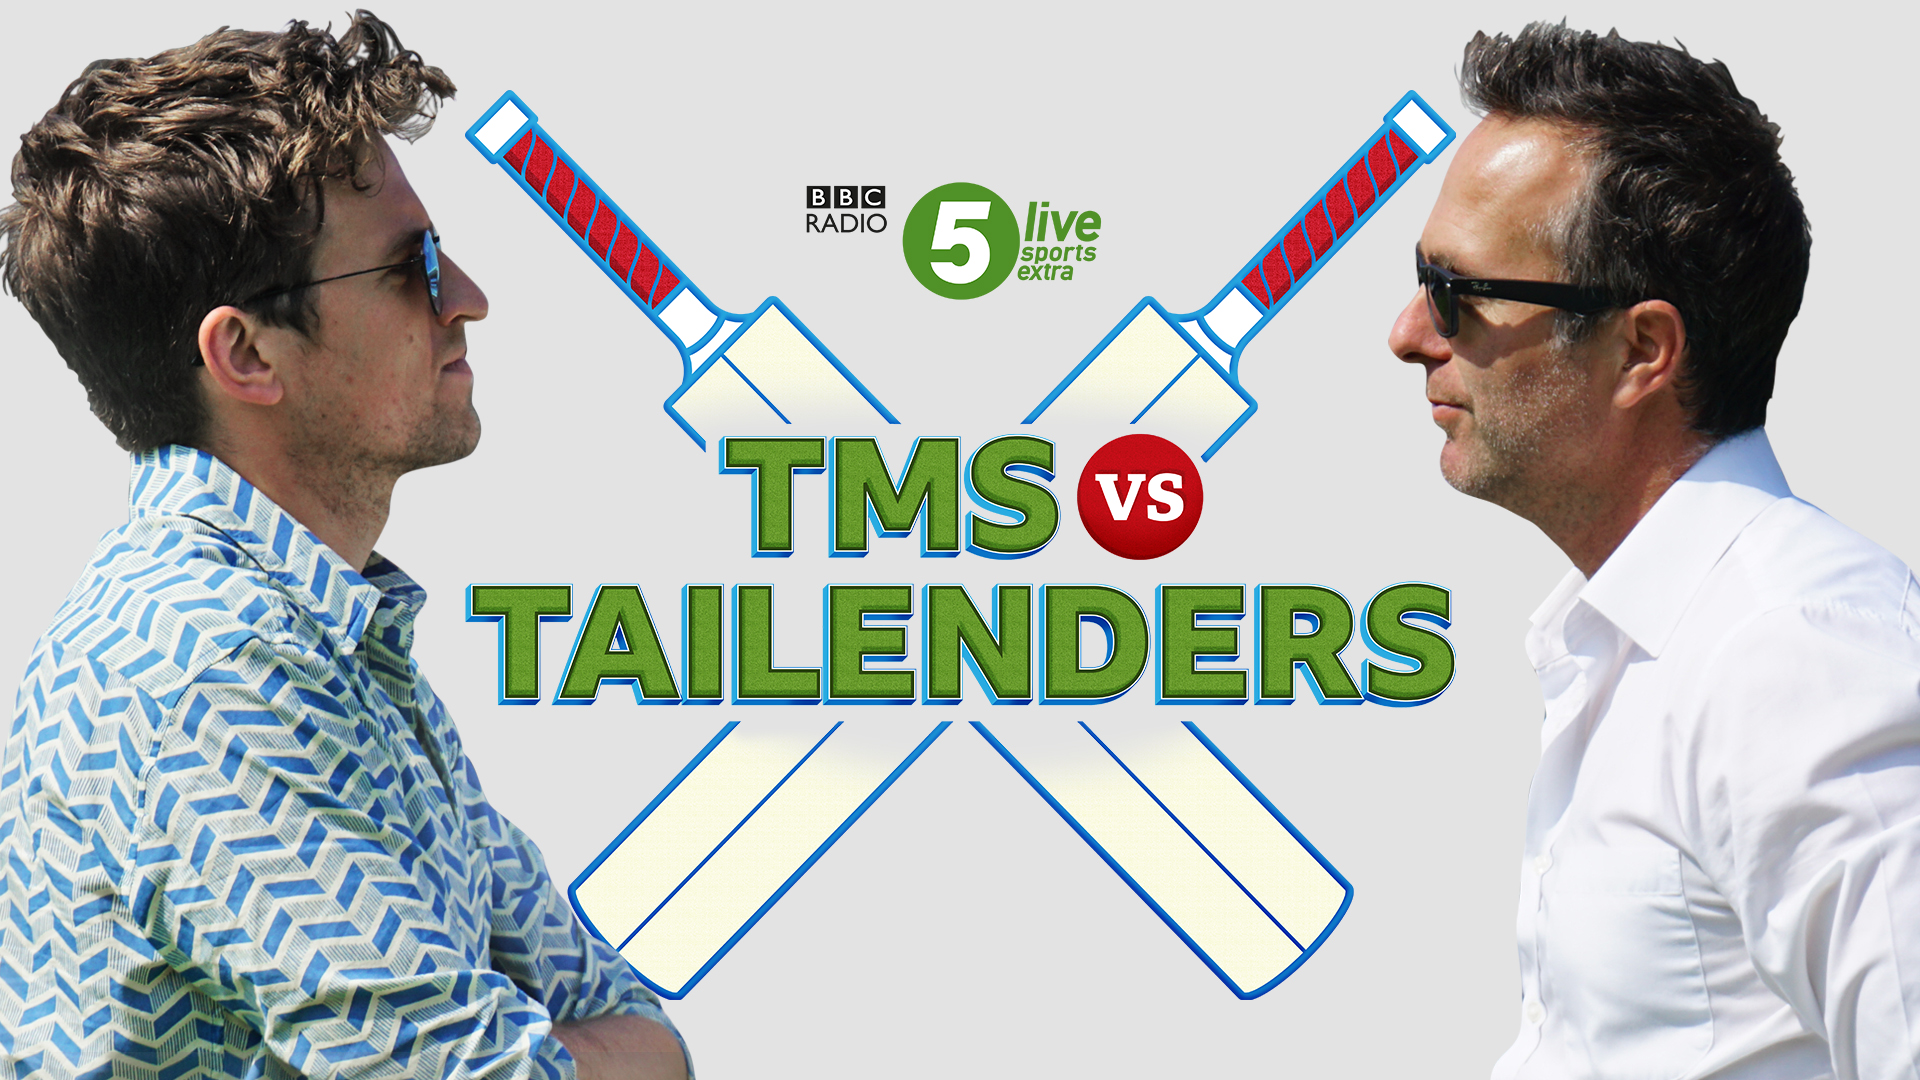 TMS to go up against Tailenders at cricket     RadioToday bbc radio 5 livebbc radio 5 live sports extragreg jamesjimmy  andersonMichael VaughanPhil Tufnell